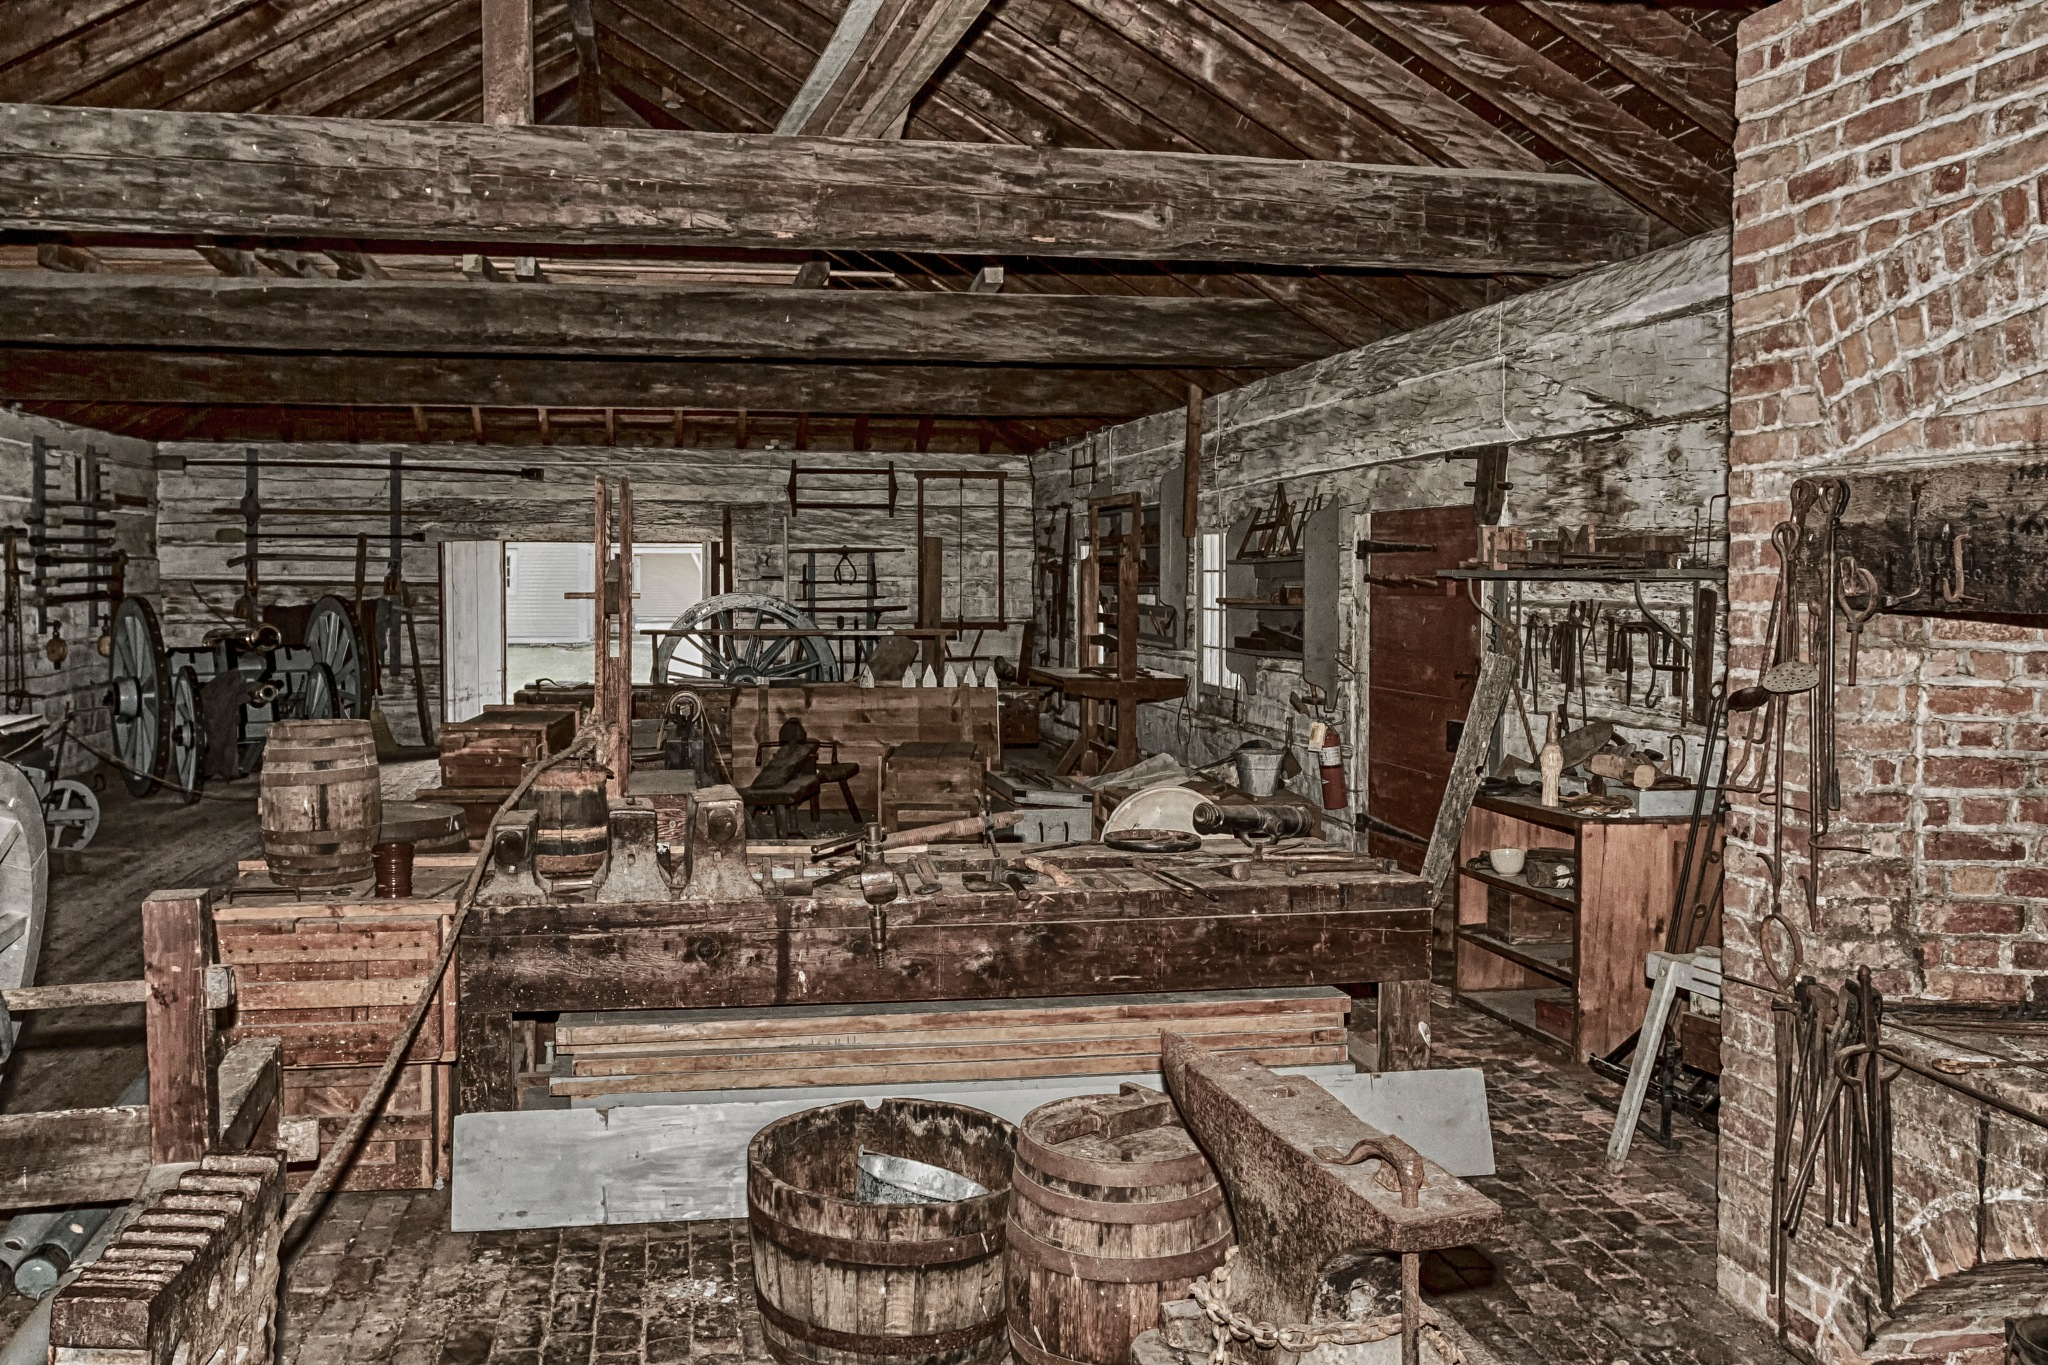 Blacksmith Shop by Joe Chrvala